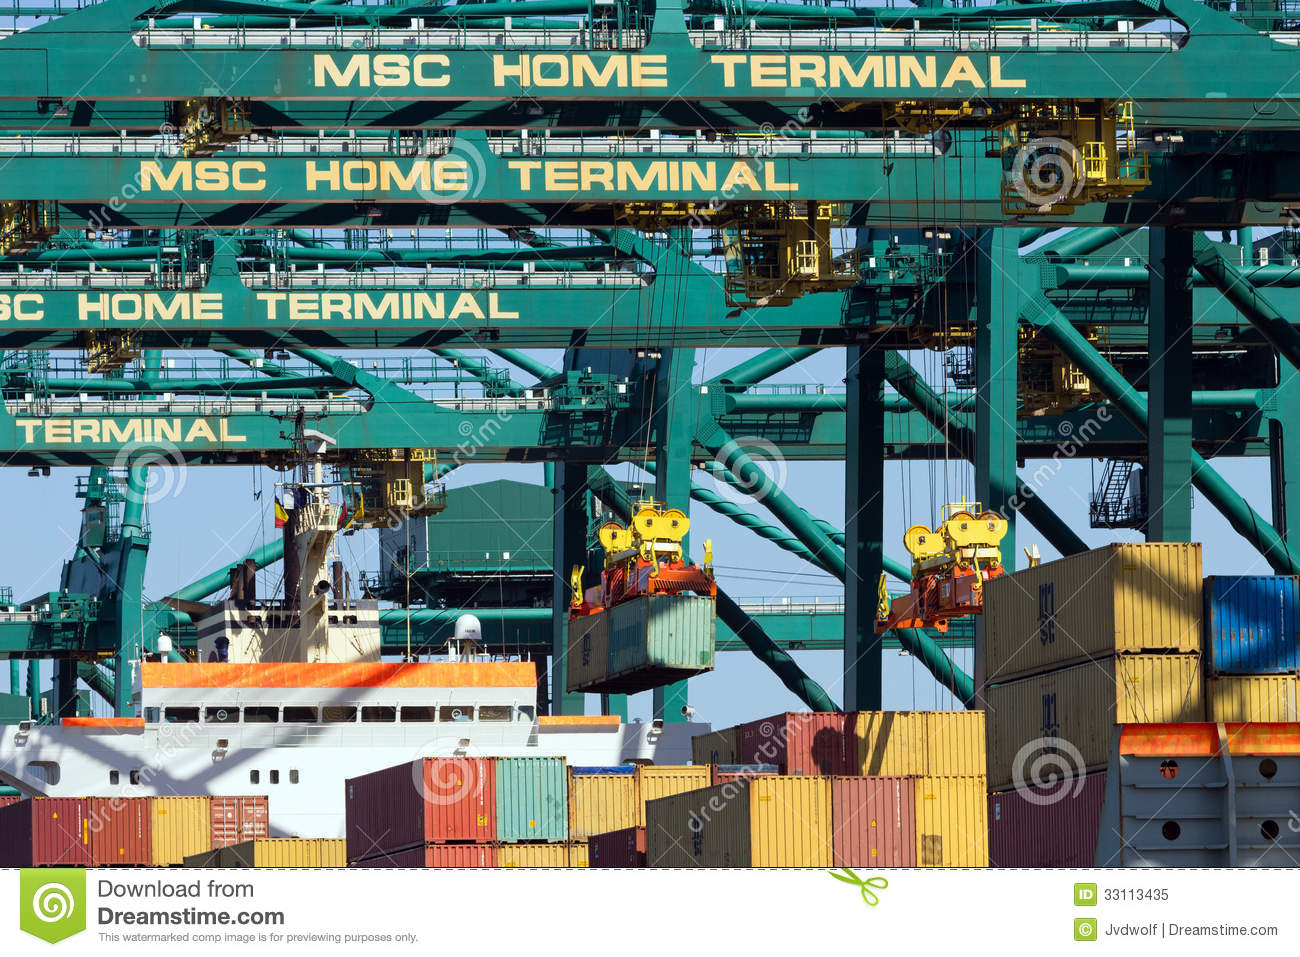 ... container-ship-beaing-unloaded-msc-home-terminal-july-belgium-msc-home